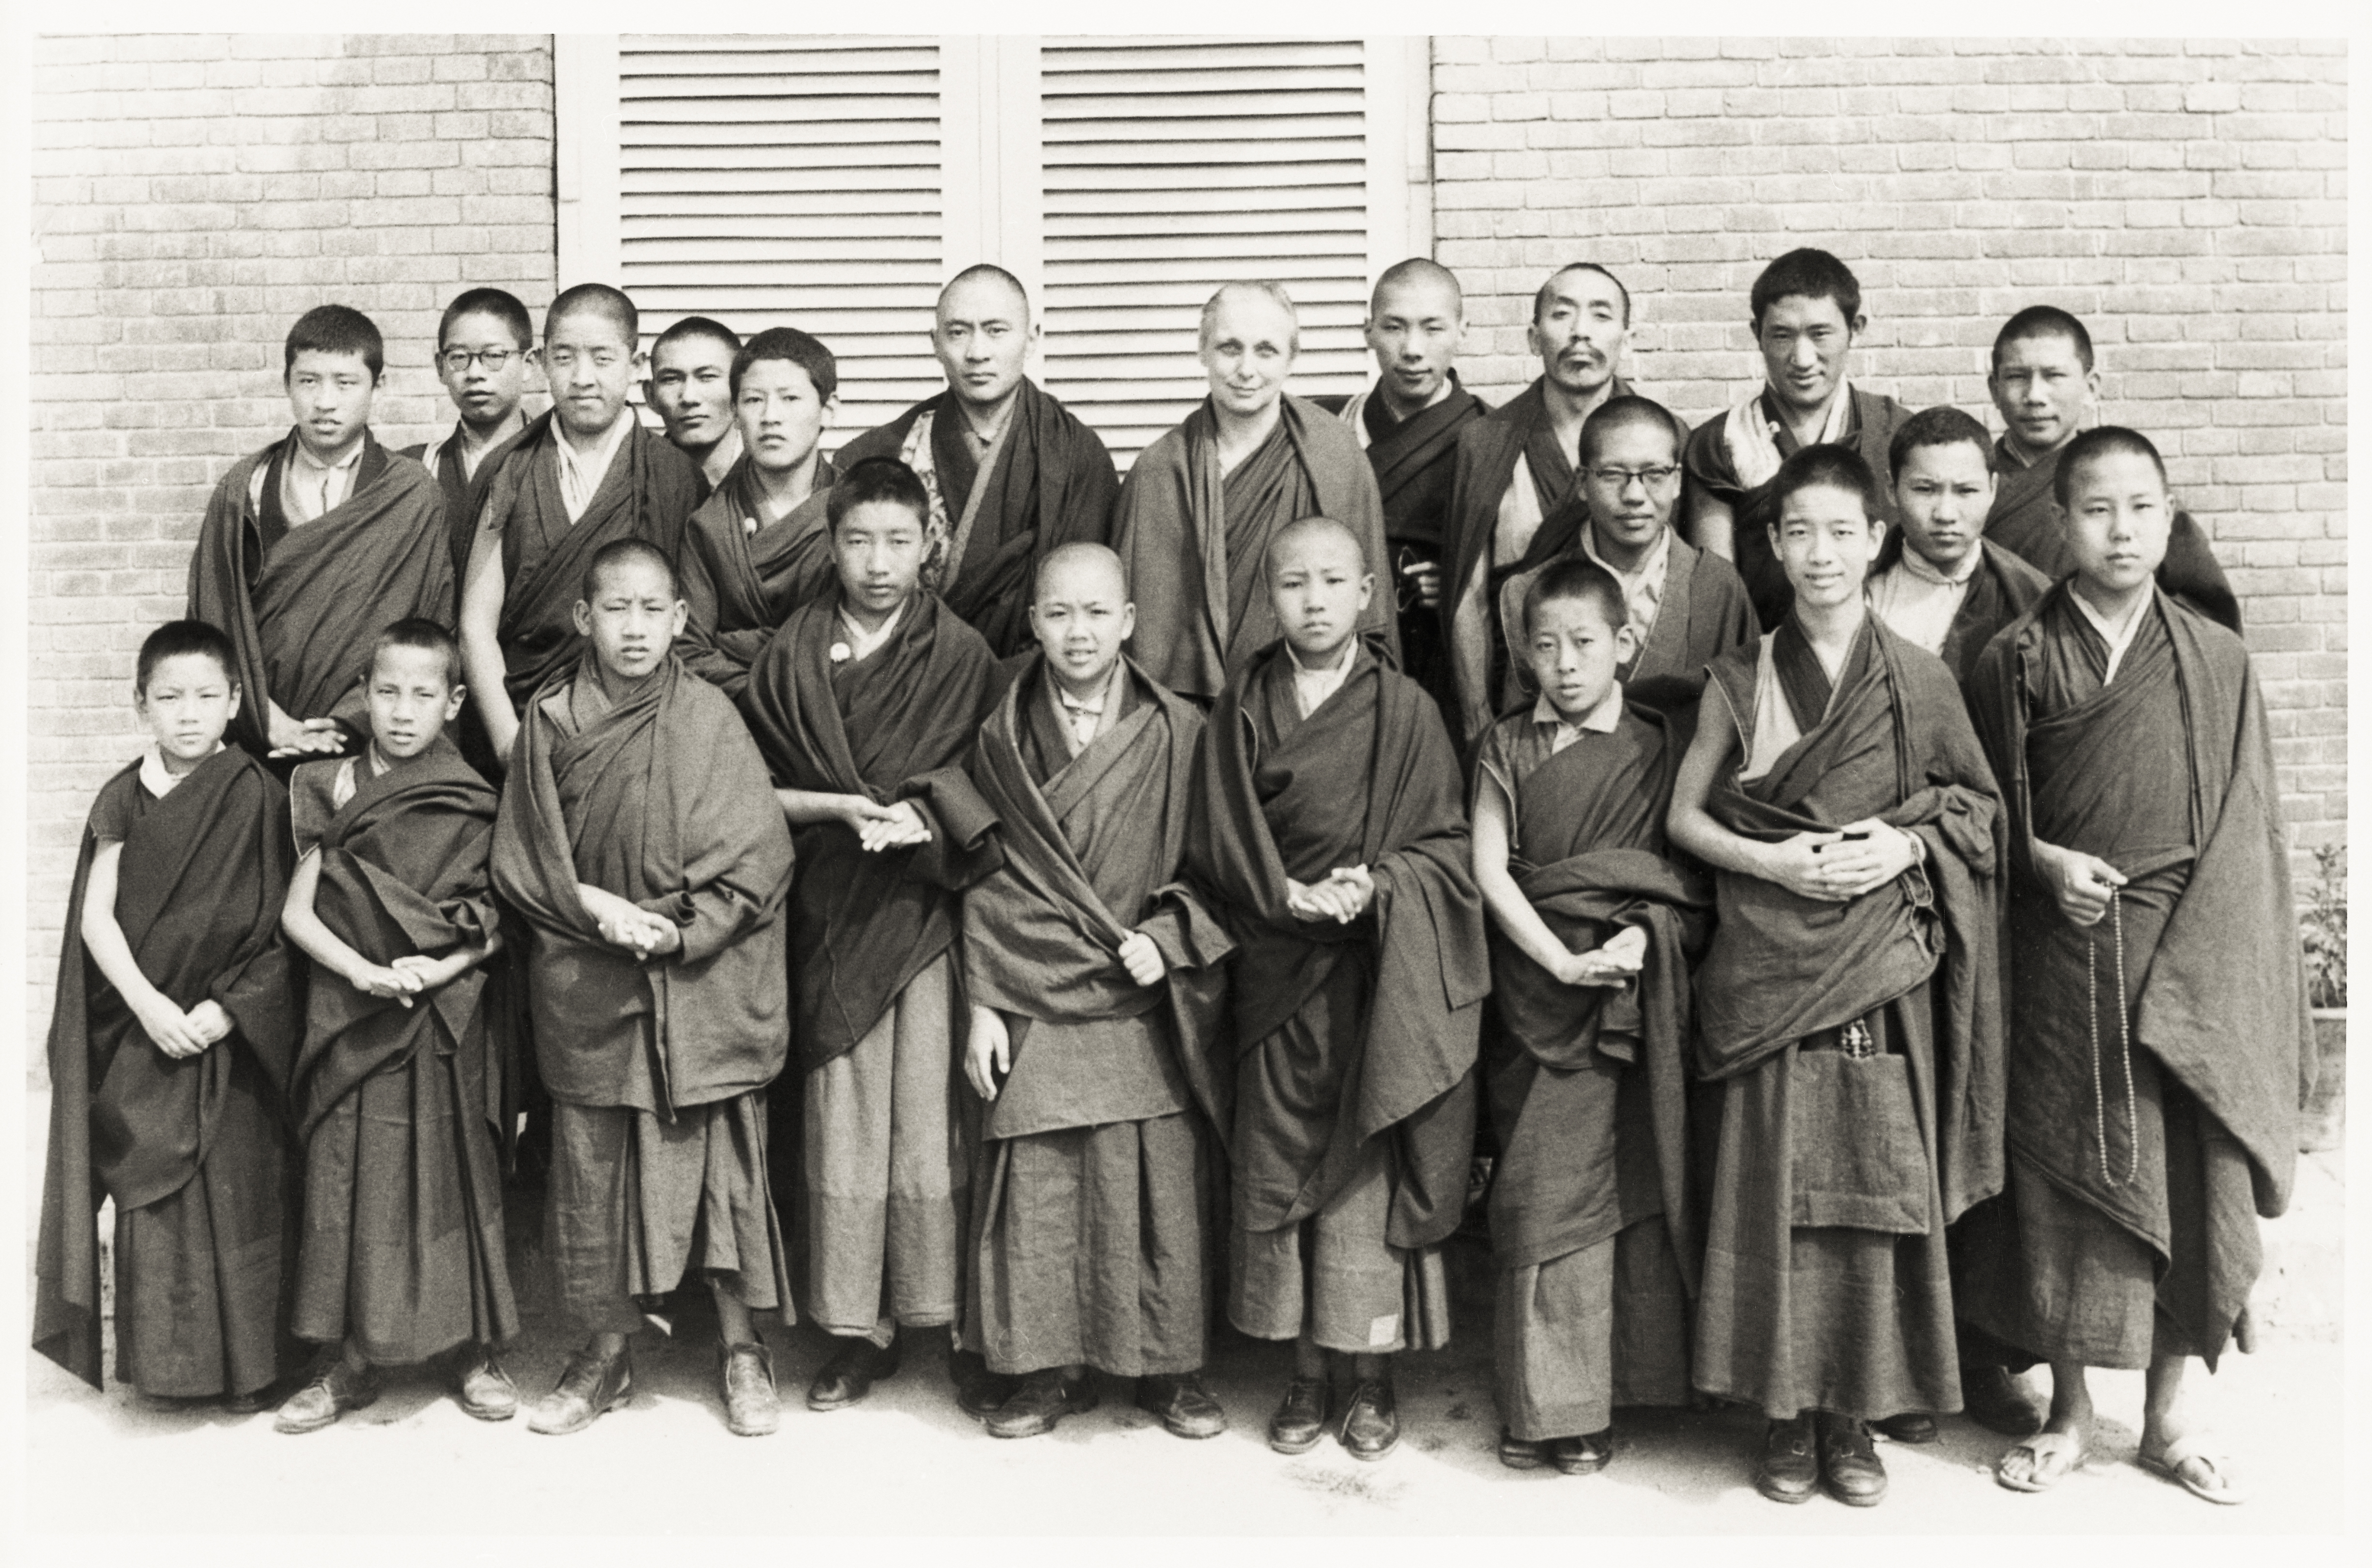 """The Young Lamas School in India with Freda Bedi and Trungpa Rinpoche in the back row and a young Lama Zopa Rinpoche standing to the far left next to Thepo Tulku. Lama Zopa Rinpoche says, """"That is me at school. I was older than Thepo Tulku although my body looks smaller.""""(PhotoShambhala Archives Collection)"""